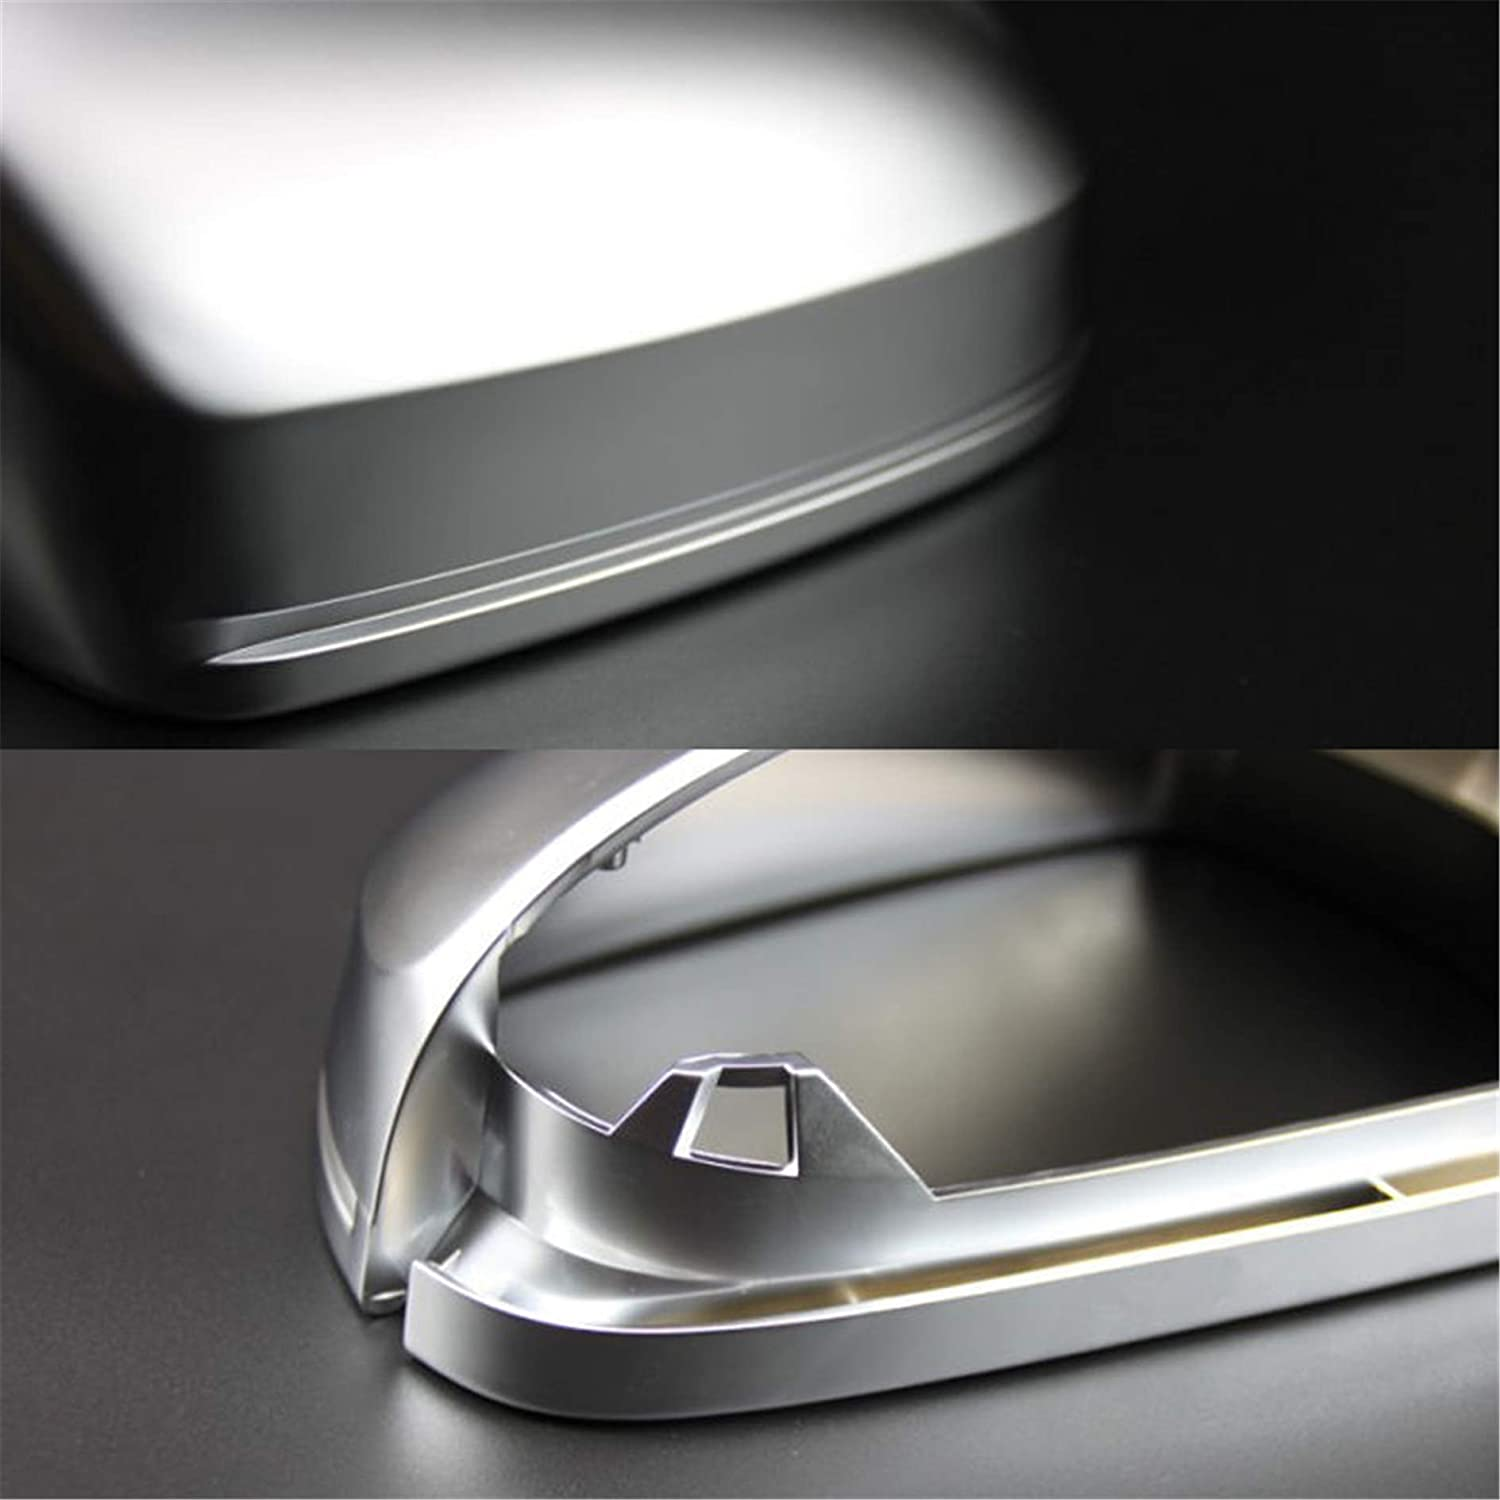 A5 S5 B8 BFD b8.5 2010-2015 BF630 HDX Side Wing ABS Chrome Rear View Mirror Replacement Cover Cap for Audi Sline Quattro